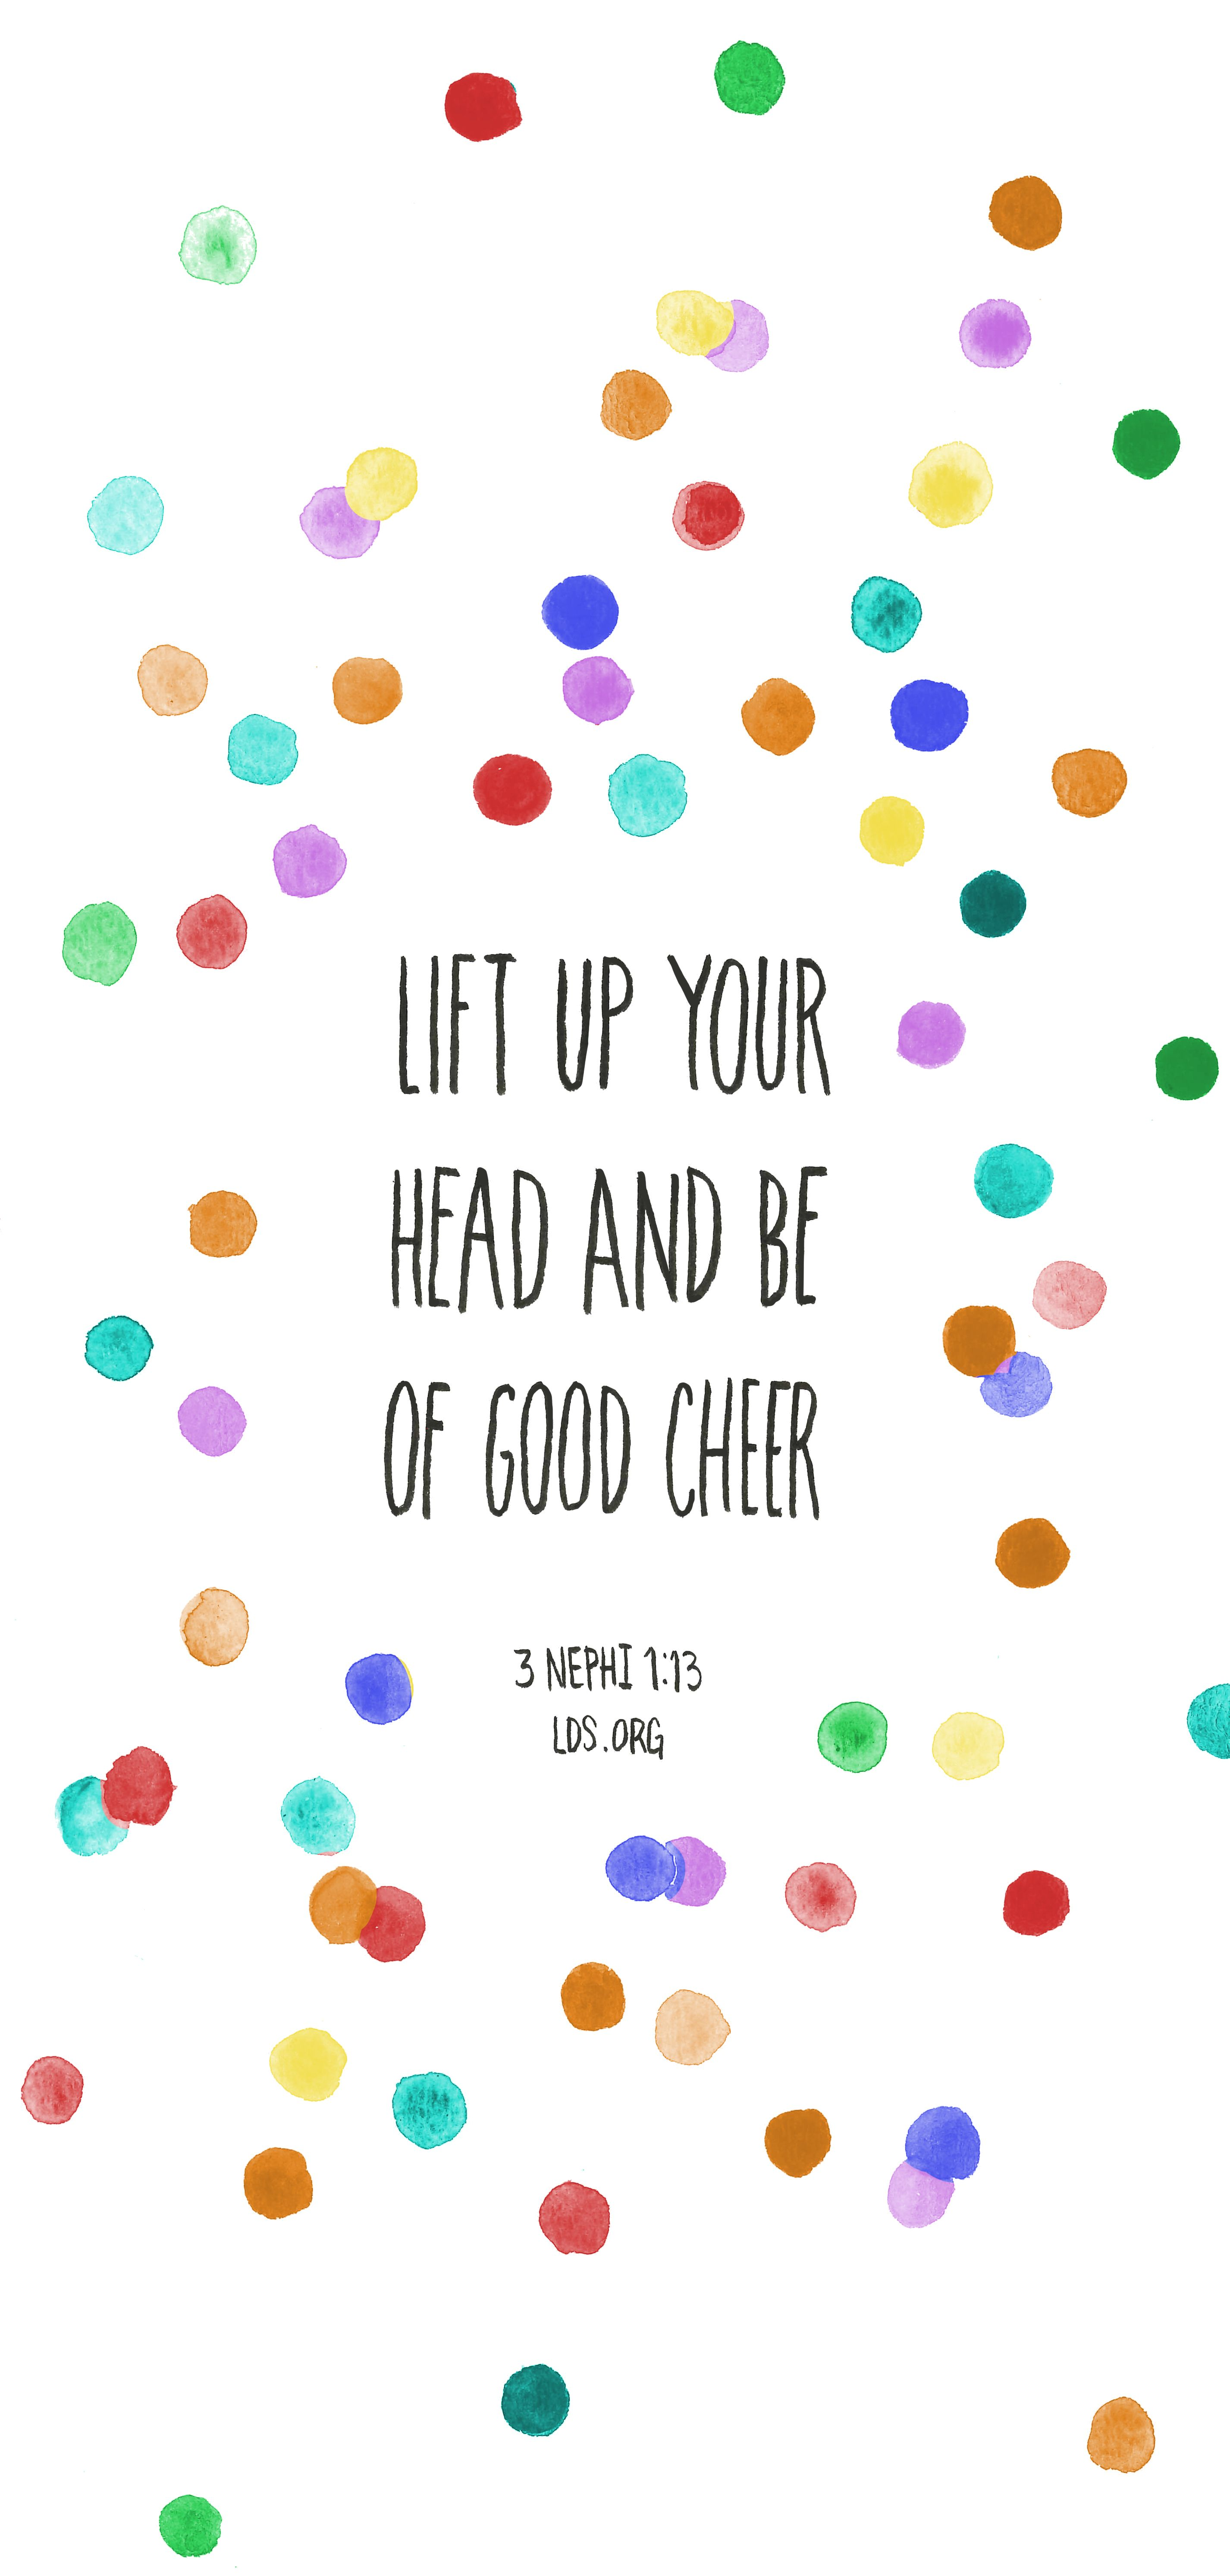 Lift Up Your Head And Be Of Good Cheer 3 Nephi 113 Lds My Love